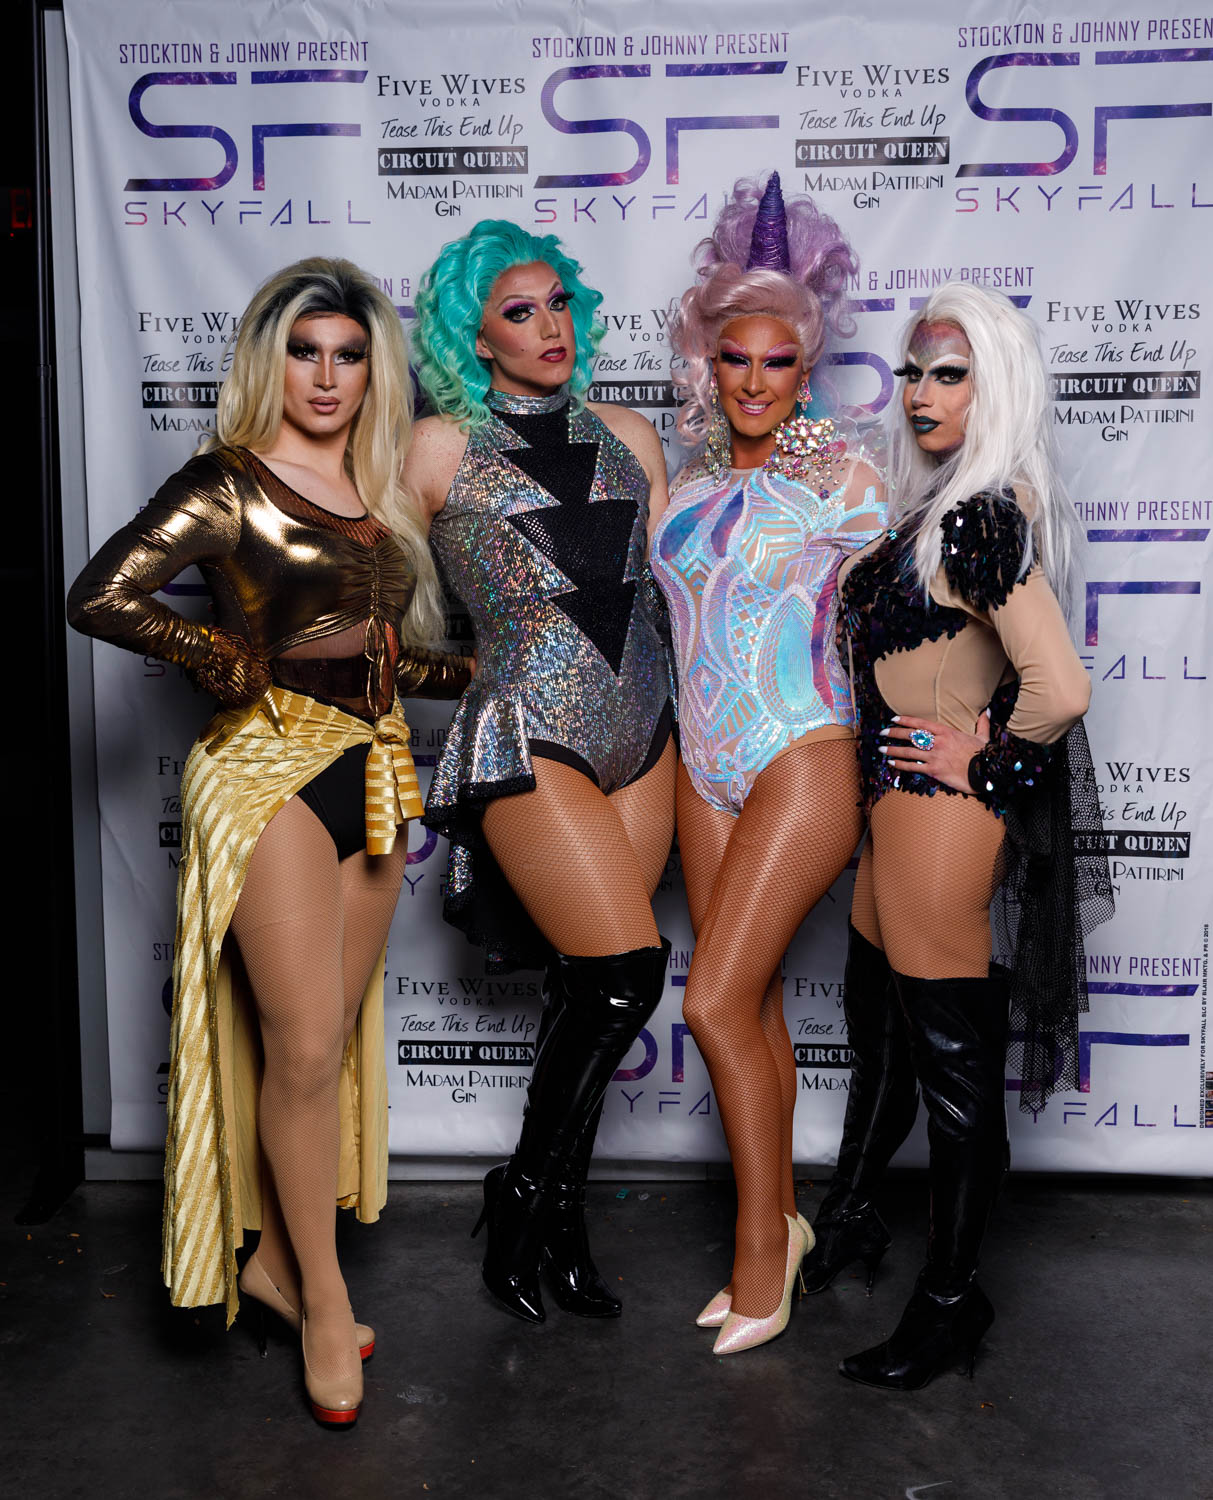 A night of drag queens